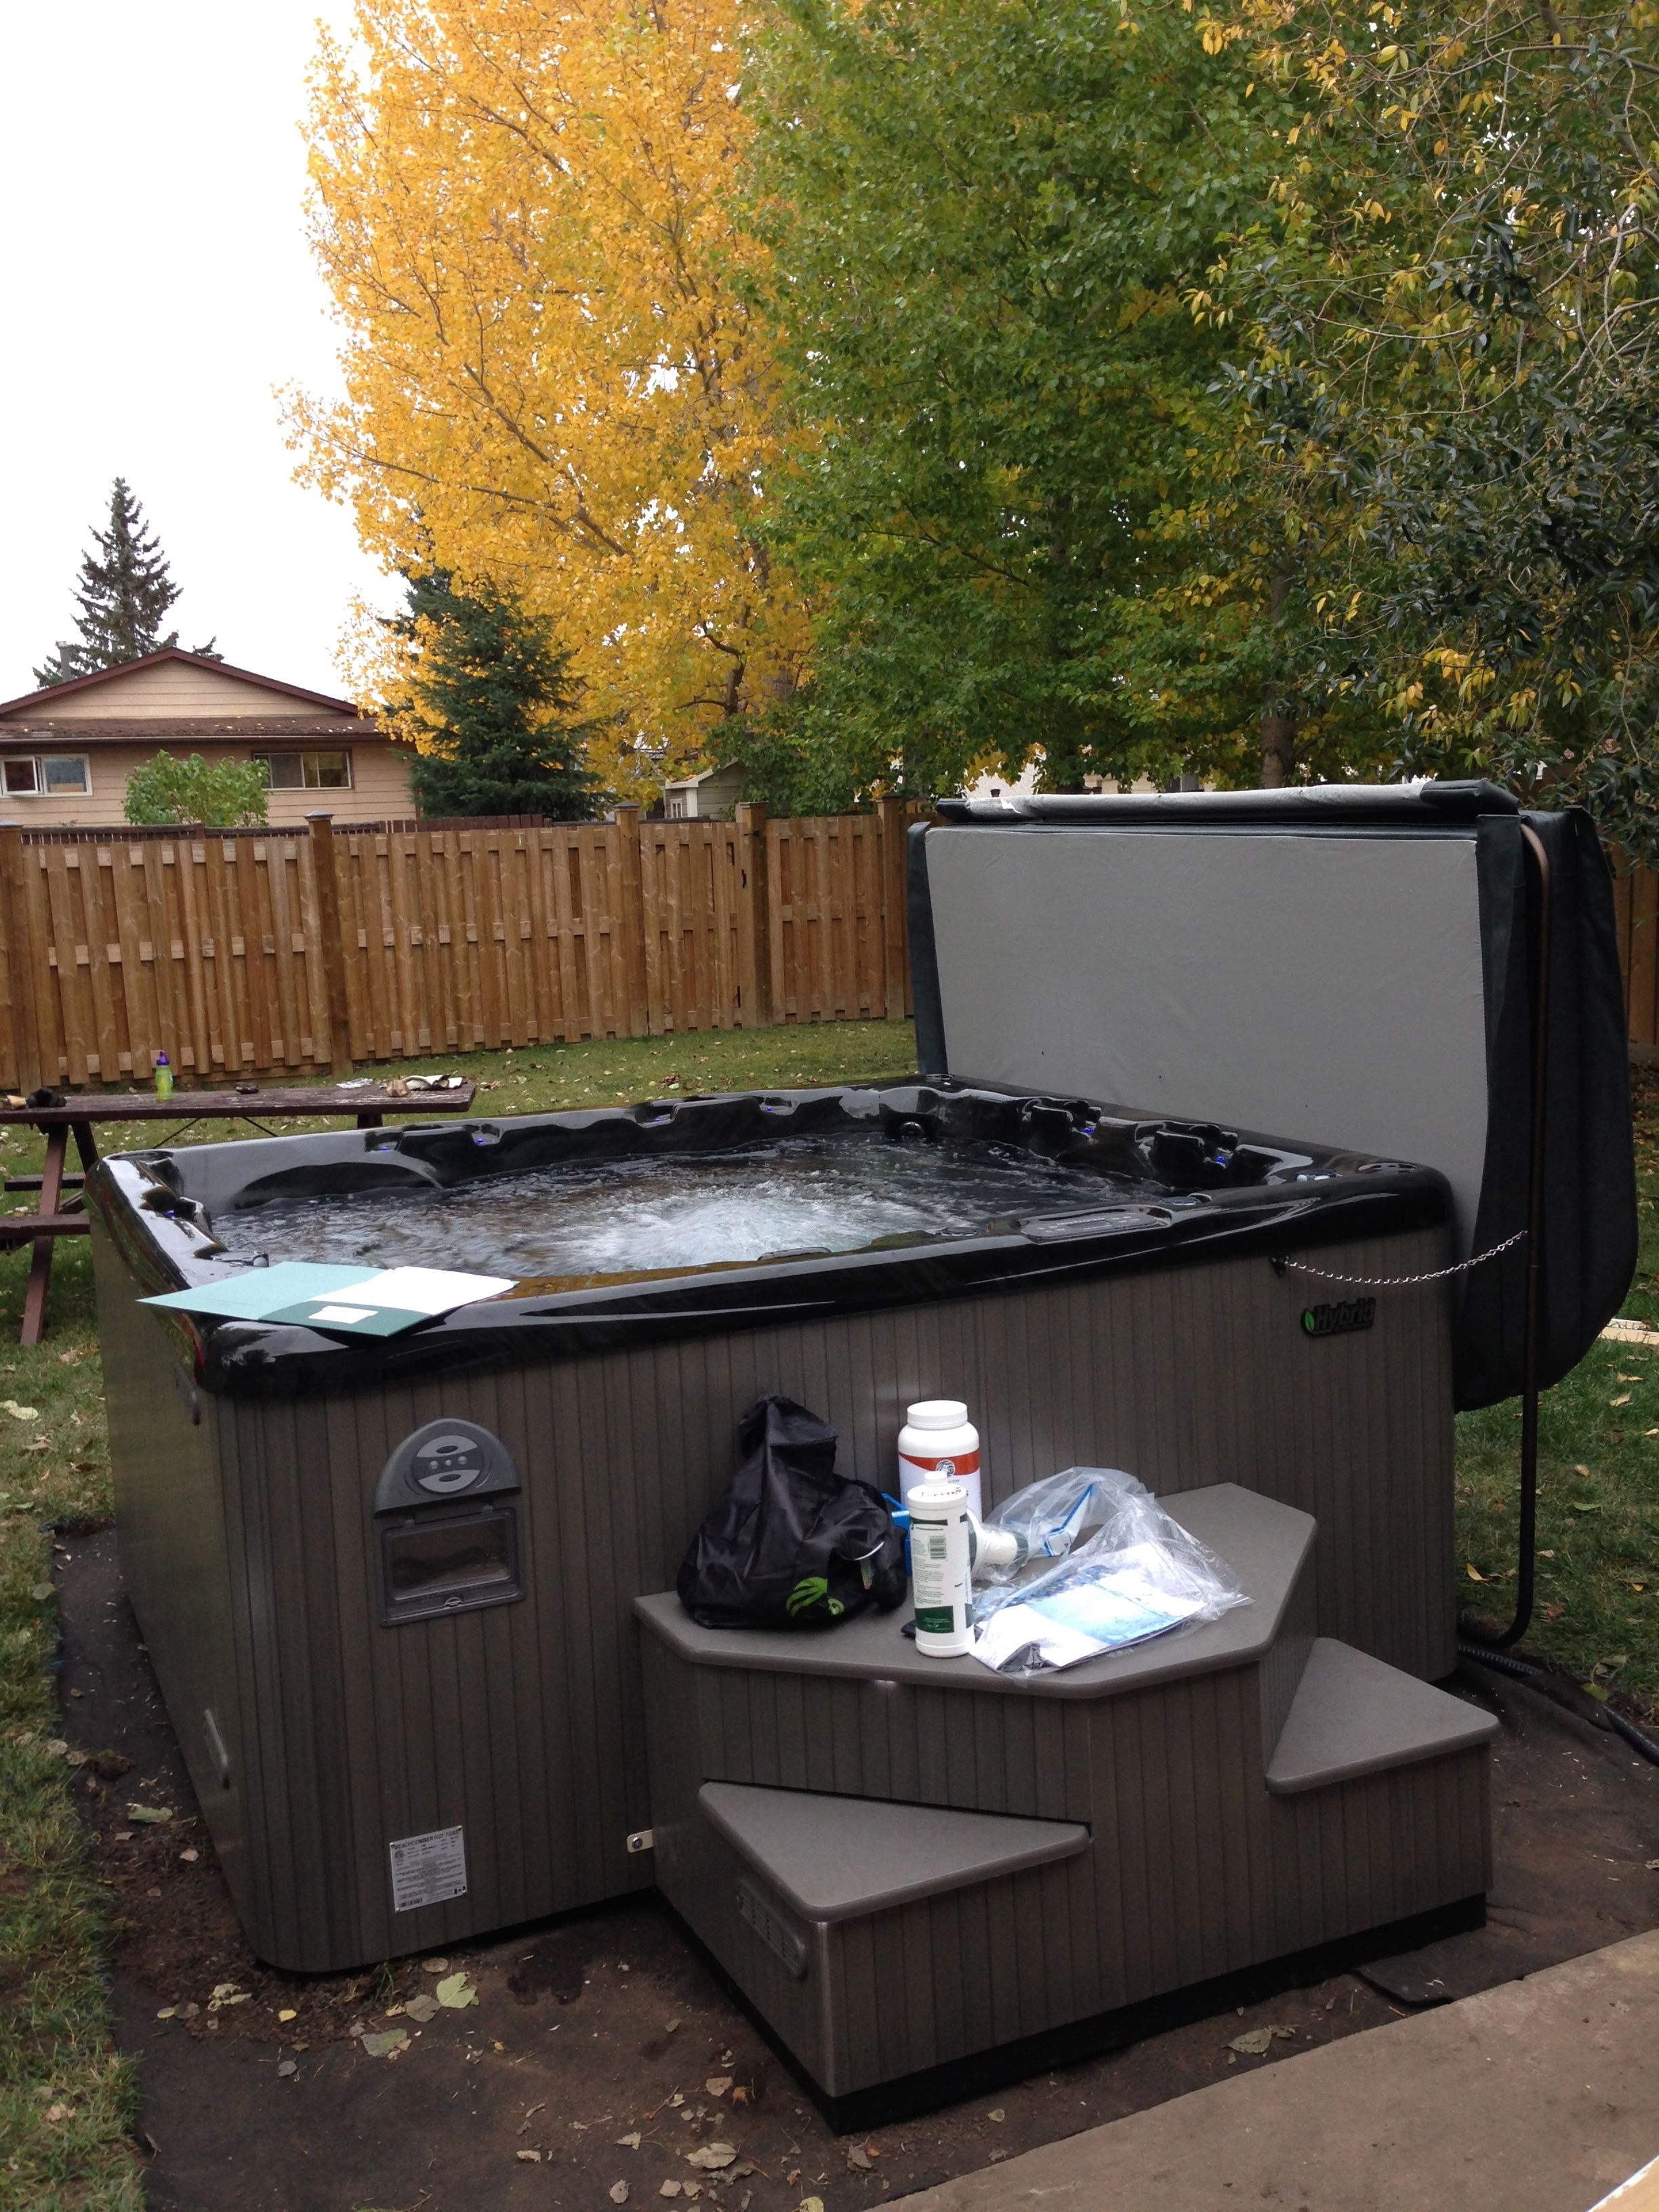 Beachcomber Hot Tub Model 720 Install Ideas In Wiring A Garden Bath Yard